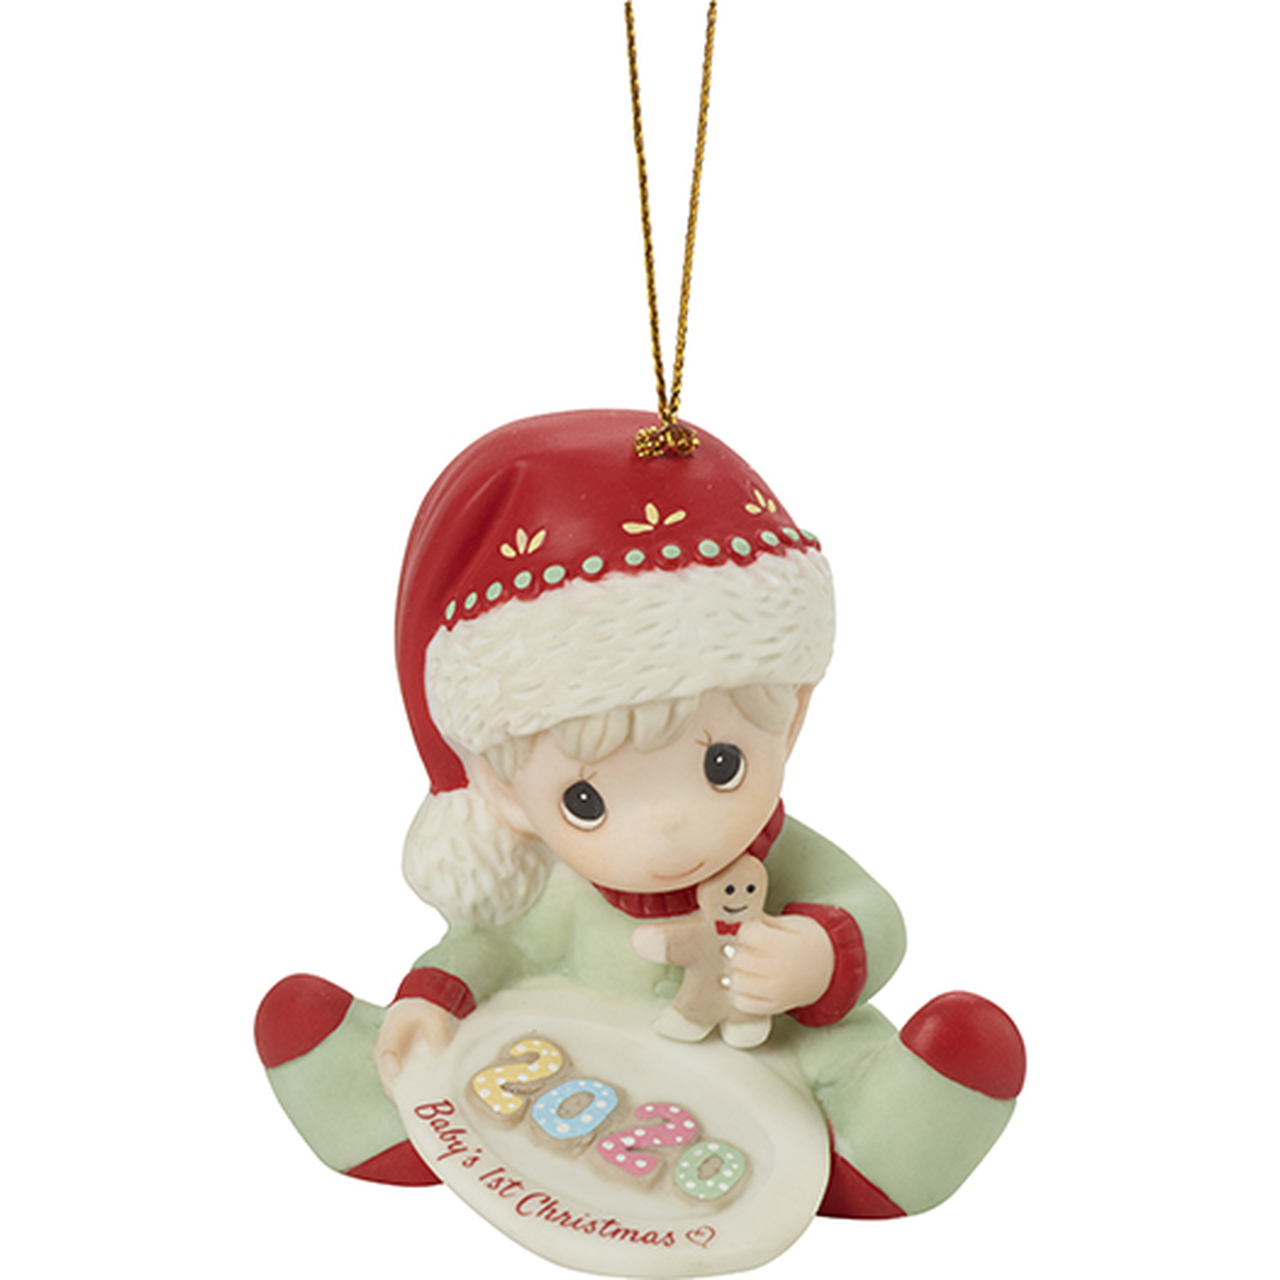 Precious Moments Babys First Christmas Ornament 2020 2020 Baby's First Christmas, Boy   Dated Precious Moments